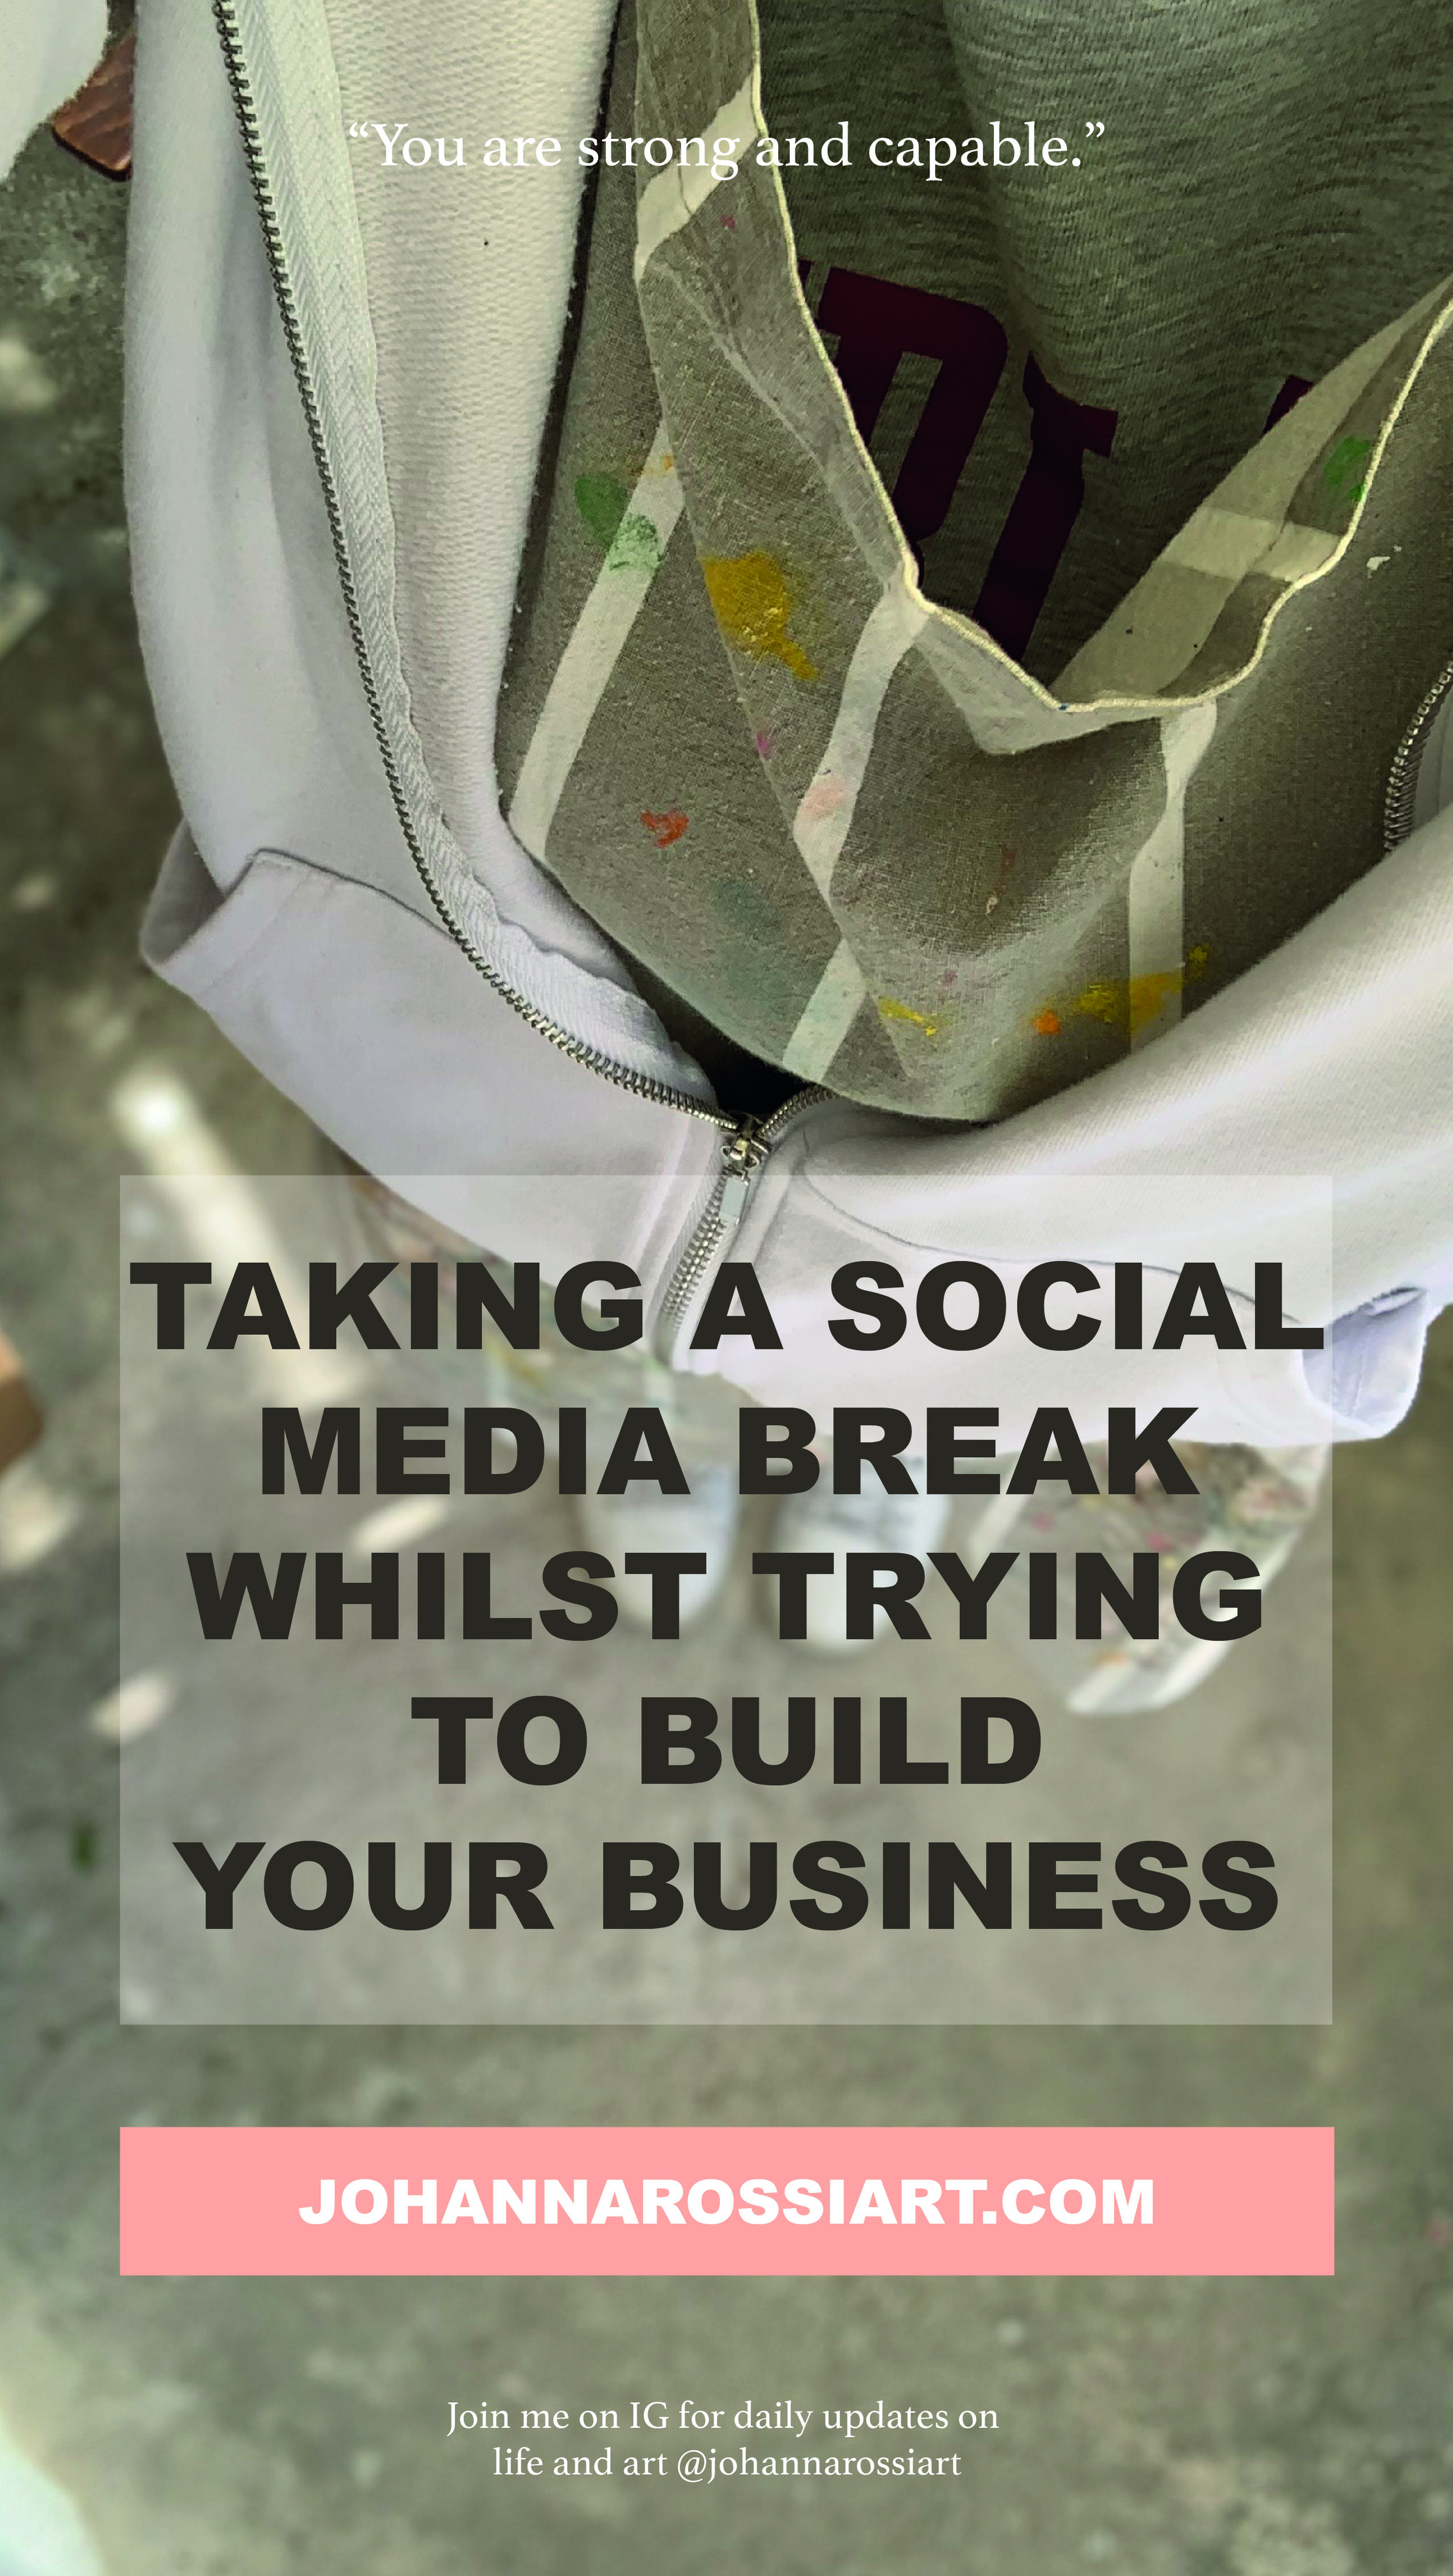 Is it possible to take a social media break whilst trying to build